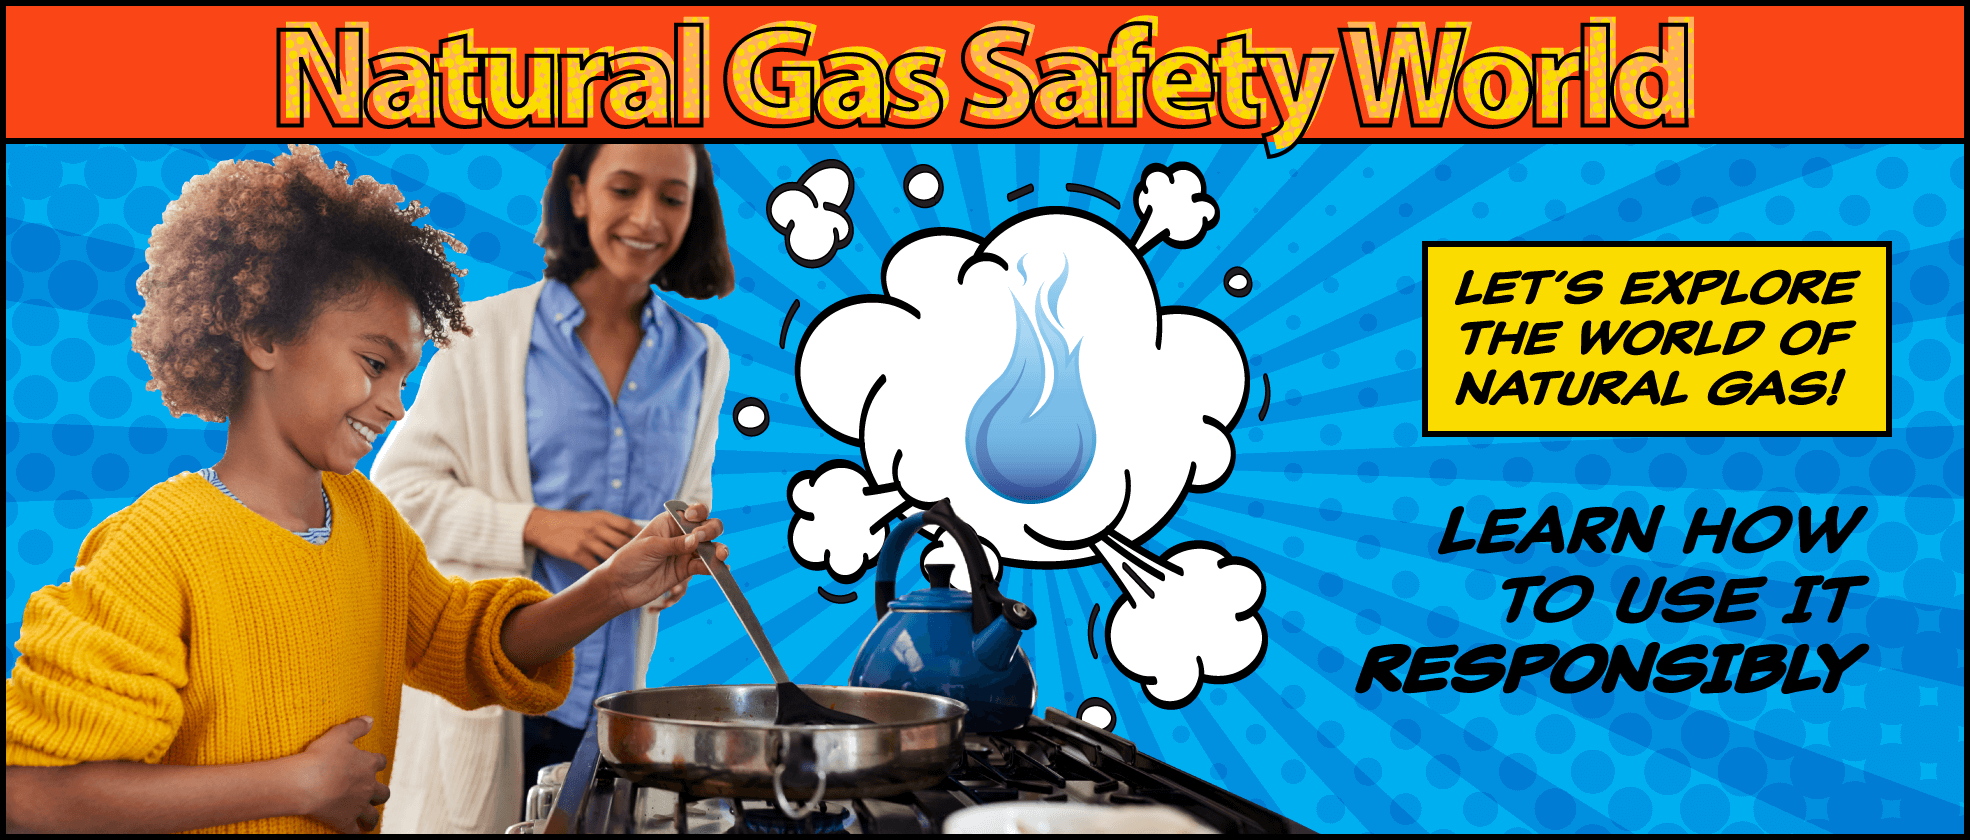 Natural Gas Safety World: Let's explore the world of natural gas! Learn how to use it responsibly